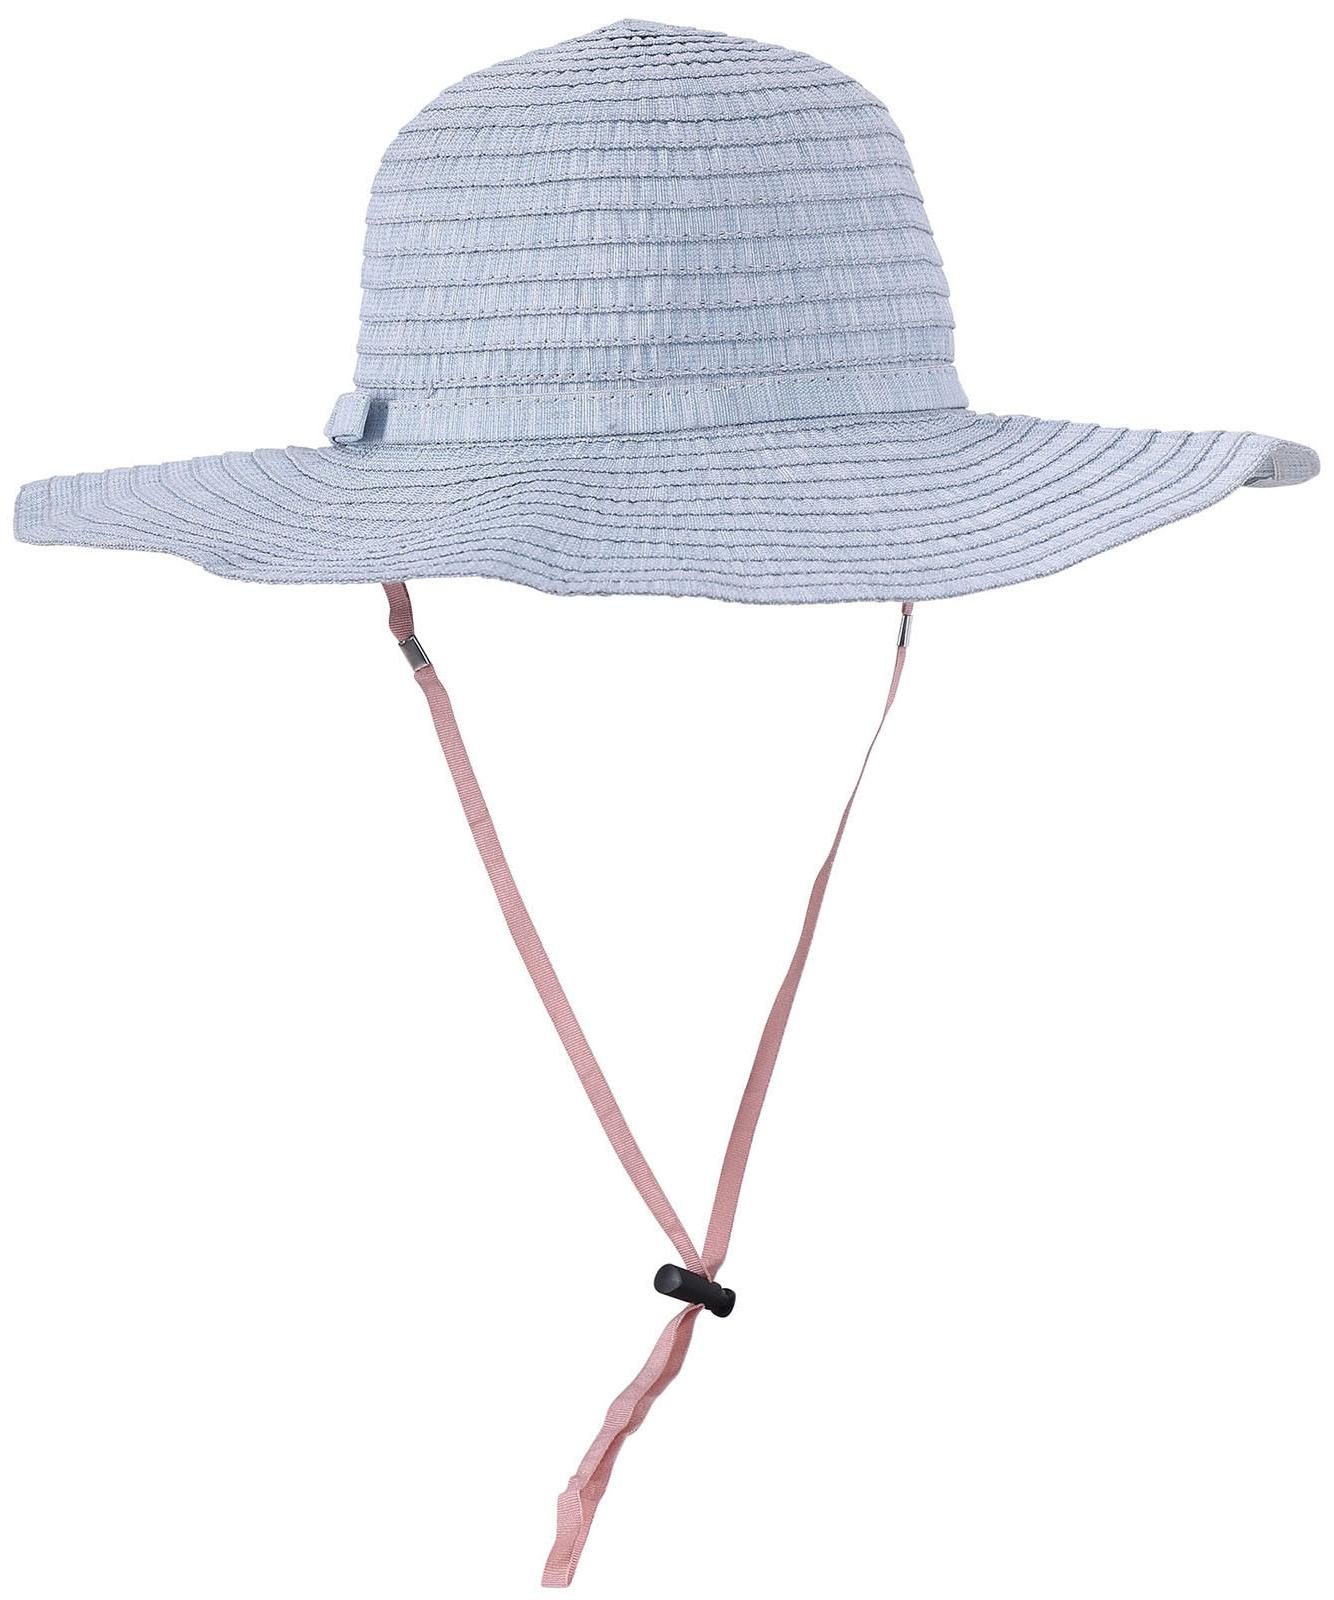 Women's Floppy Packable Wide Brim Sun Shade Derby Beach Buck